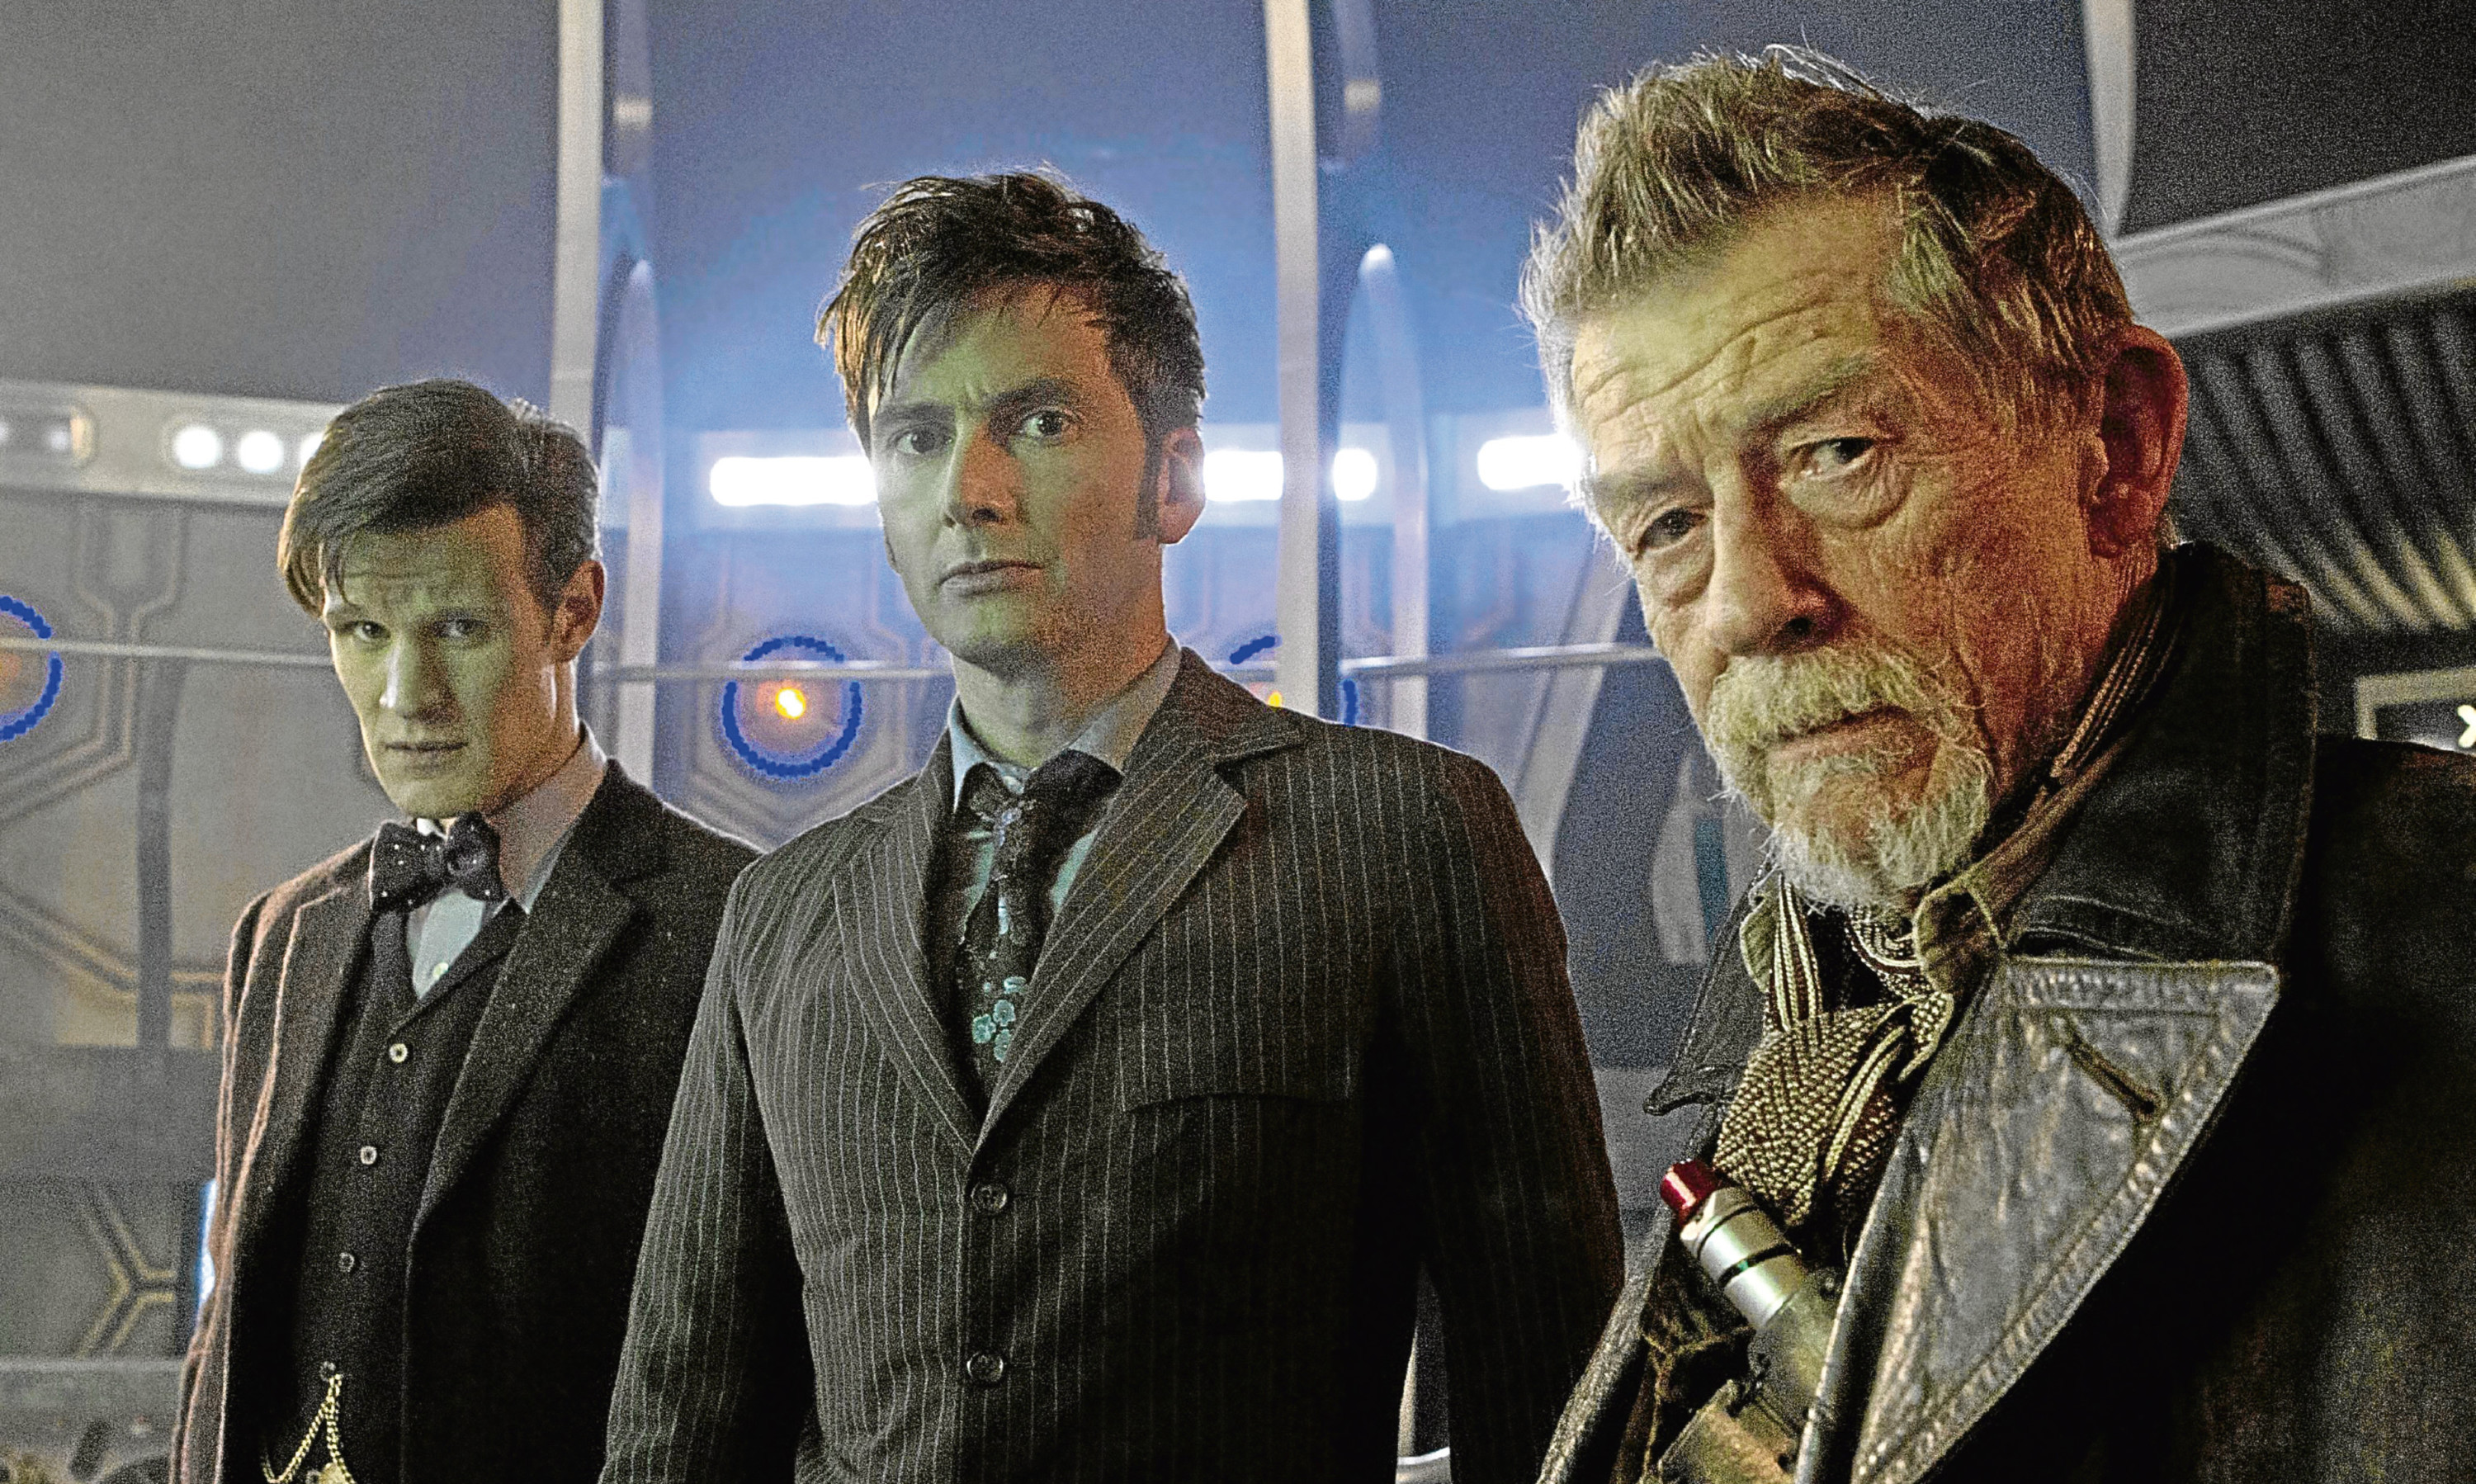 The late Sir John Hurt, right, as Doctor Who alongside former Doctors Matt Smith and David Tennant. Mike says the time is now right for a female Doctor Who.